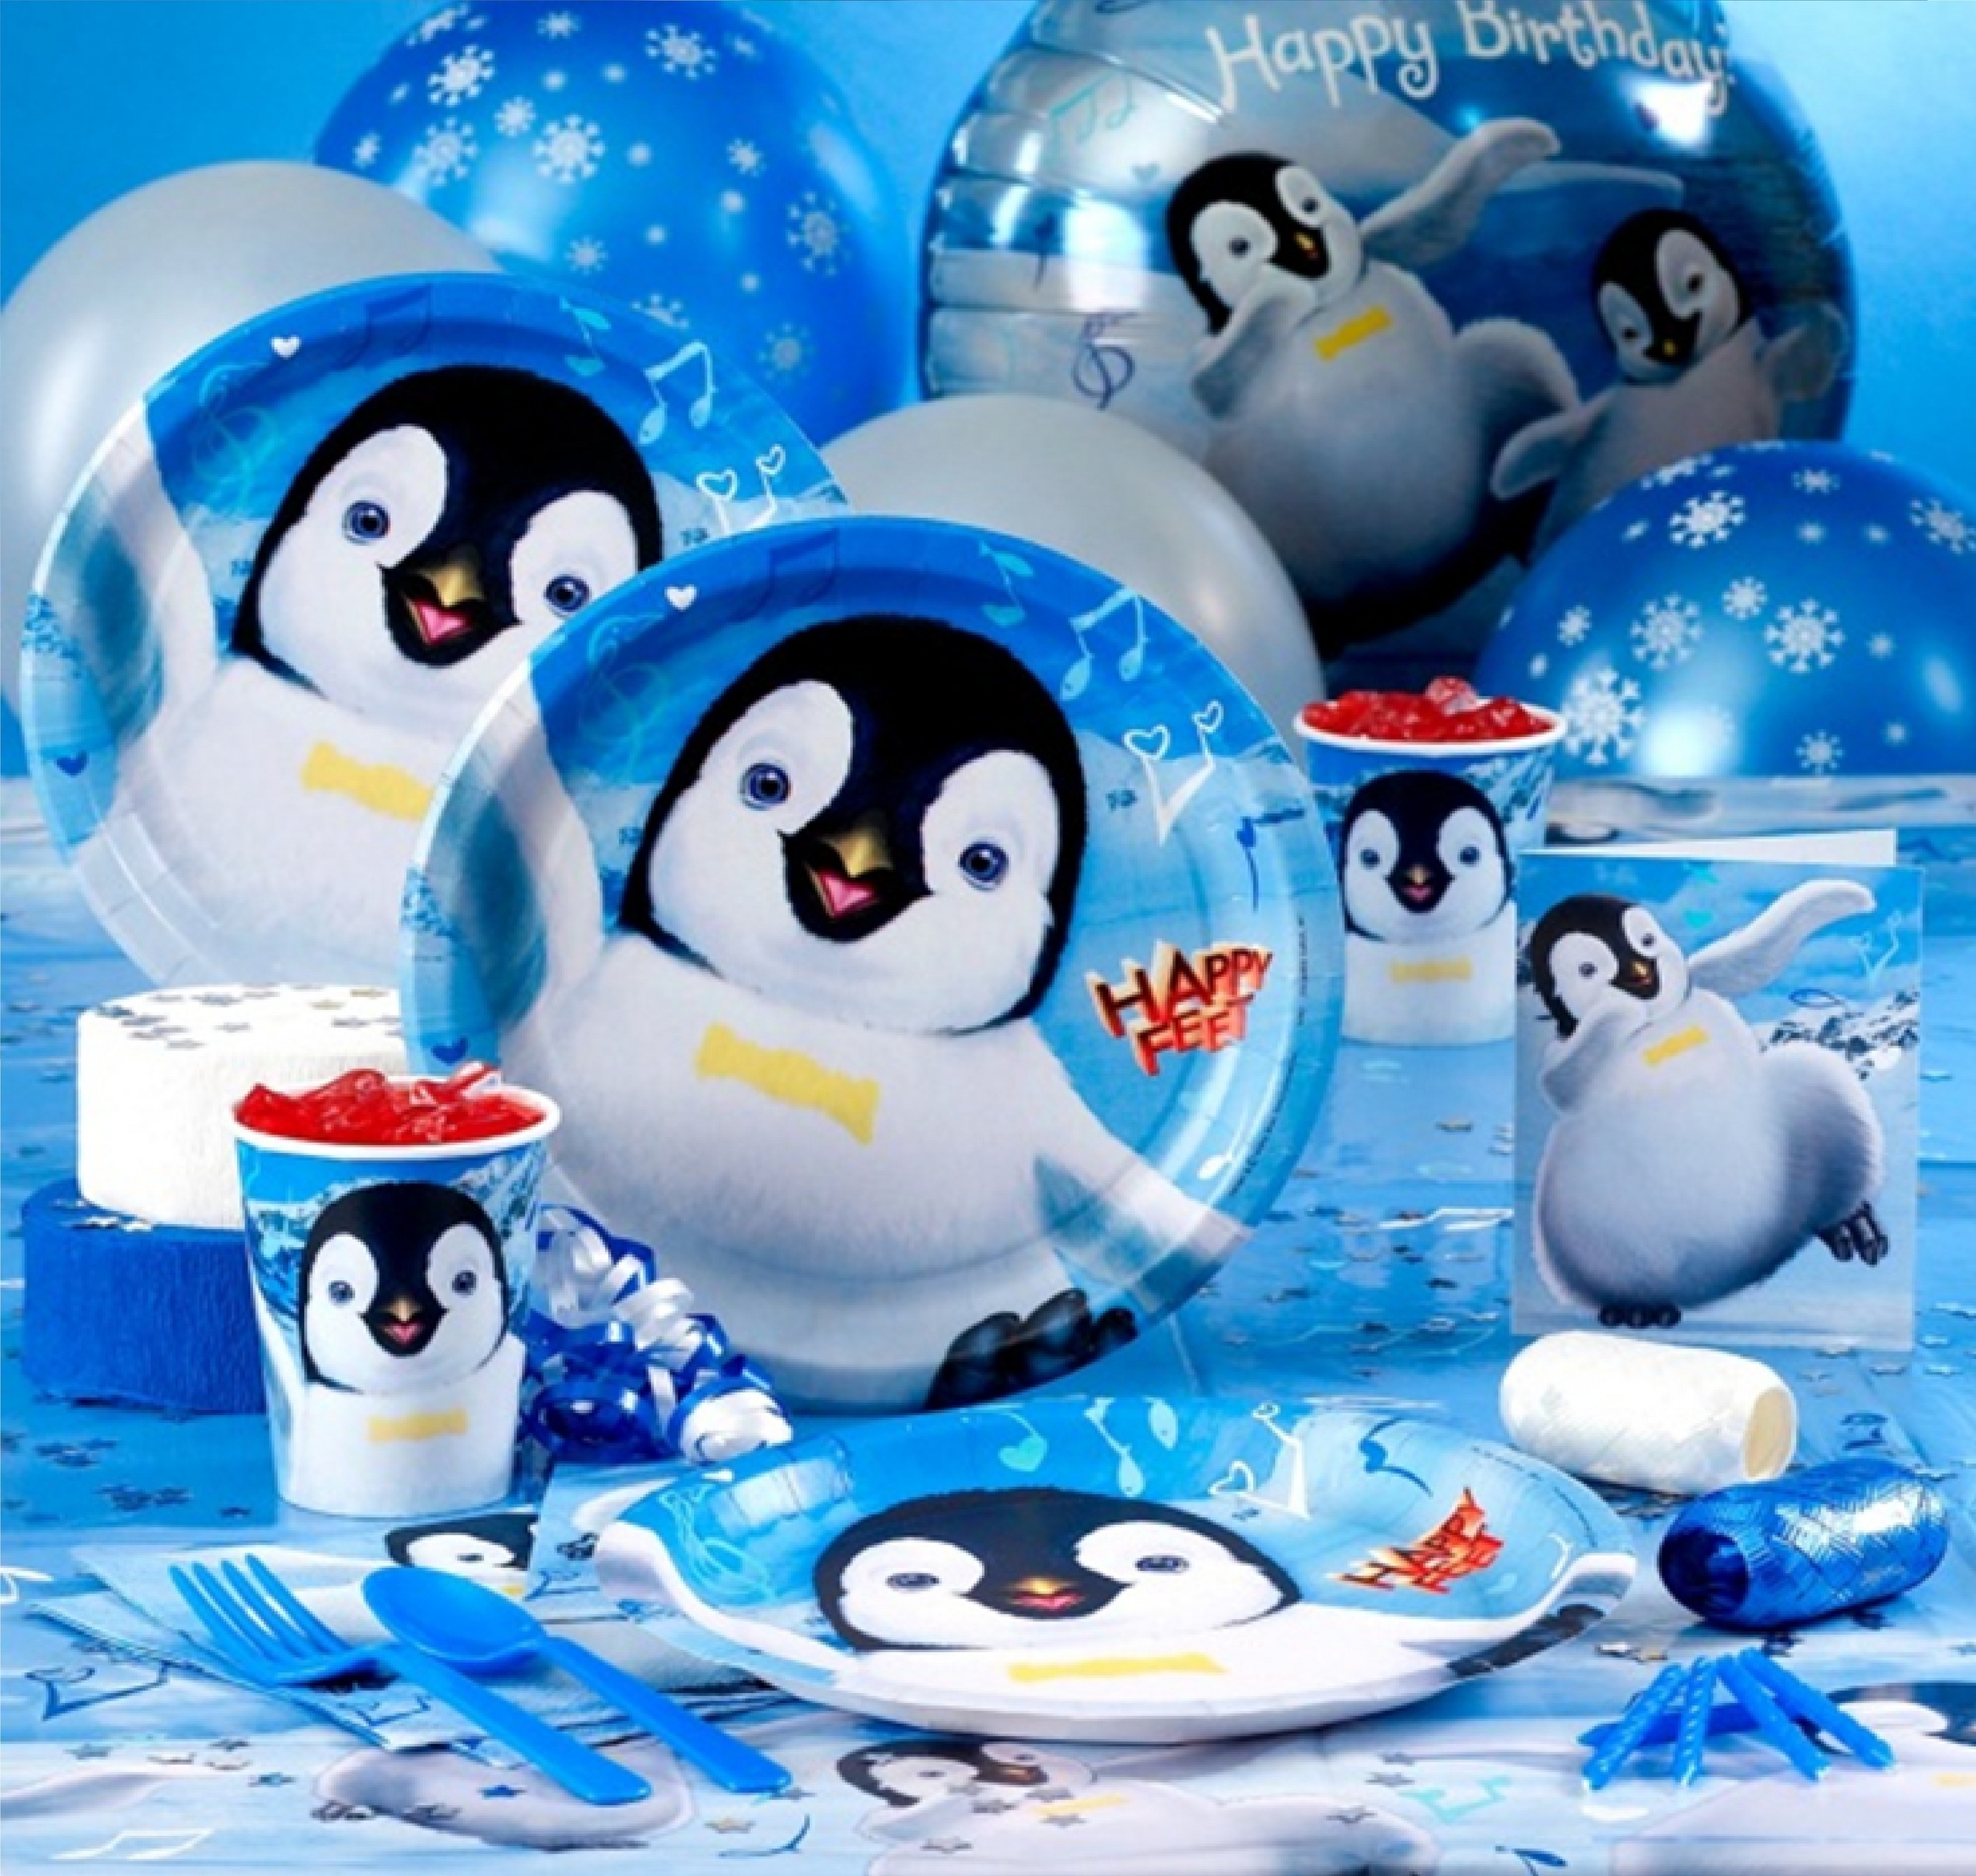 Happy Feet Images Party HD Wallpaper And Background Photos